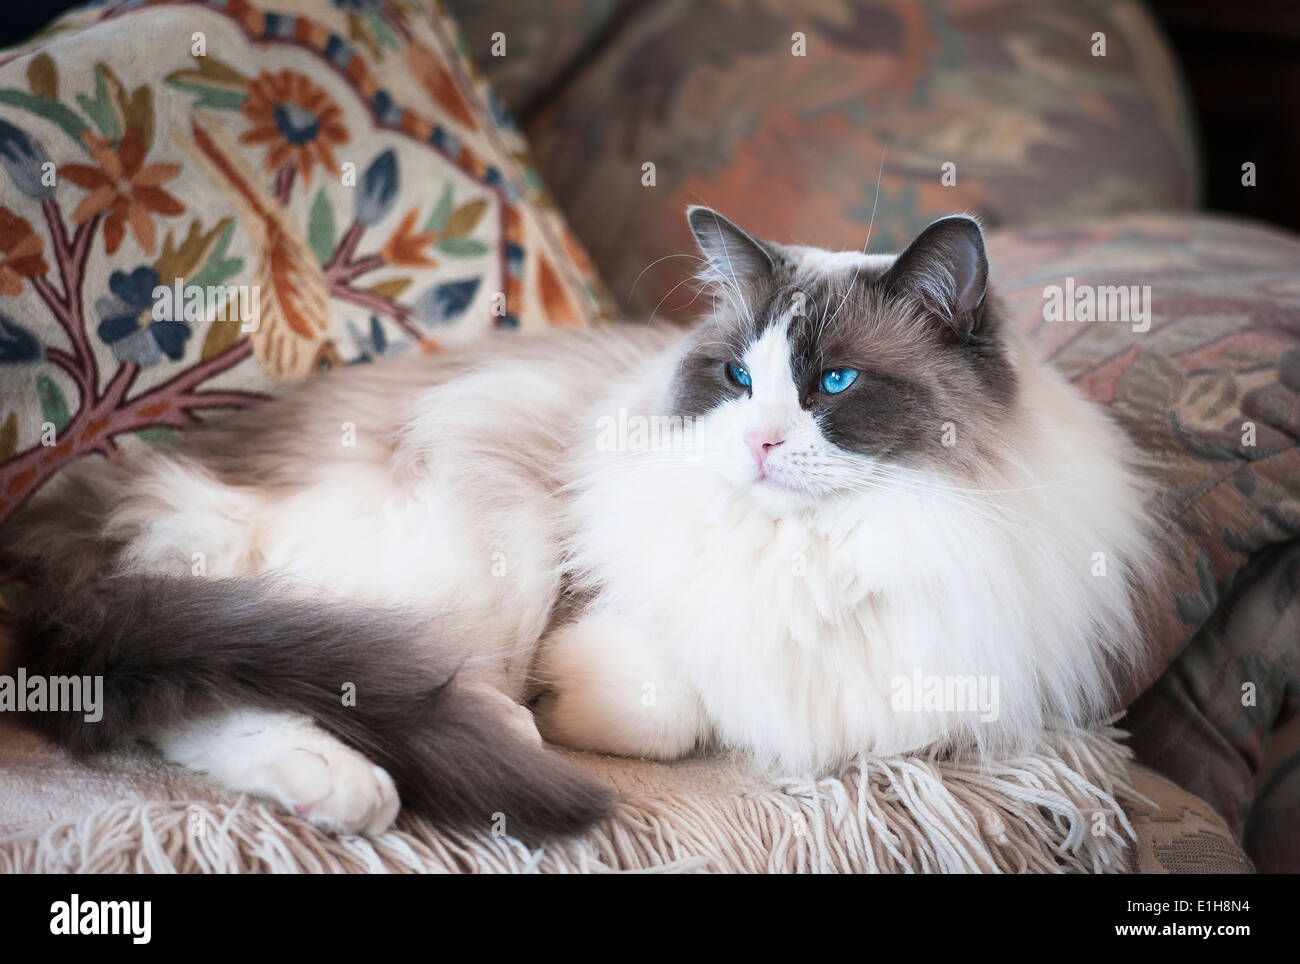 Mature Ragdoll male cat in armchair comfort - Stock Image